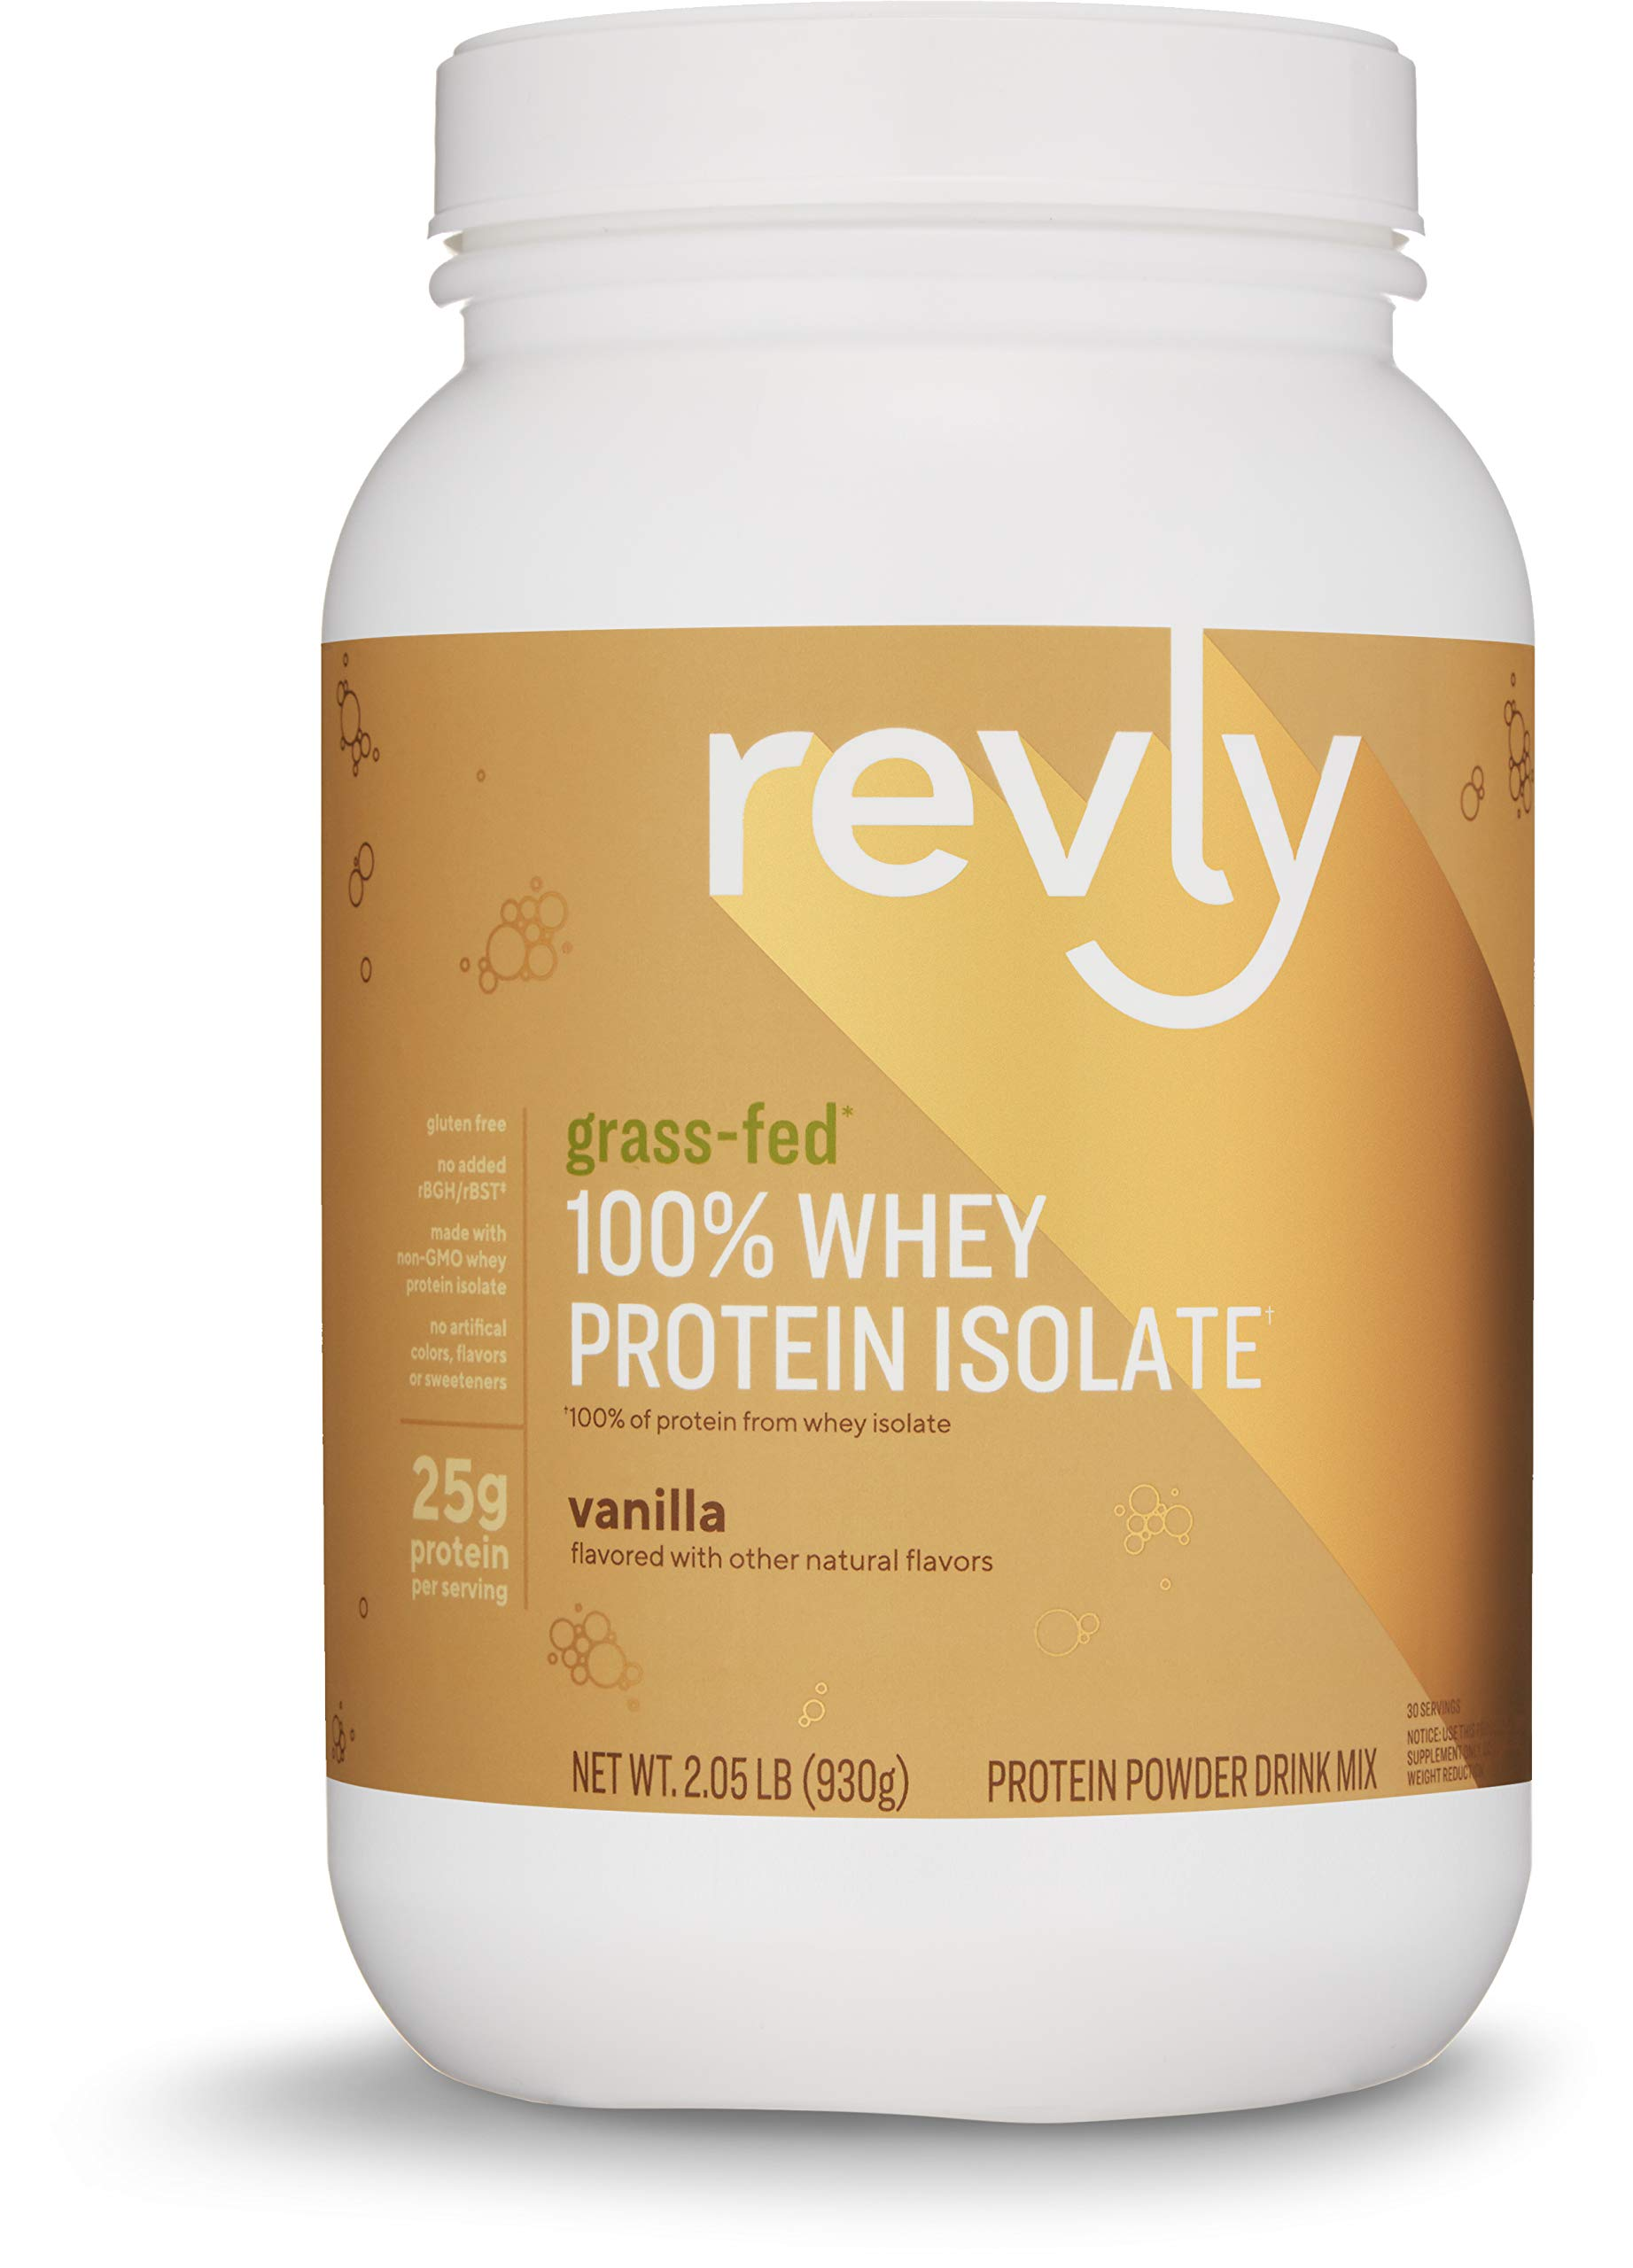 Amazon Brand - Revly 100% Grass-Fed Whey Protein Isolate Powder, Vanilla, 2.05 lbs, 30 Servings, Gluten Free, Non-GMO, No added rbgh/rbst‡ by Revly